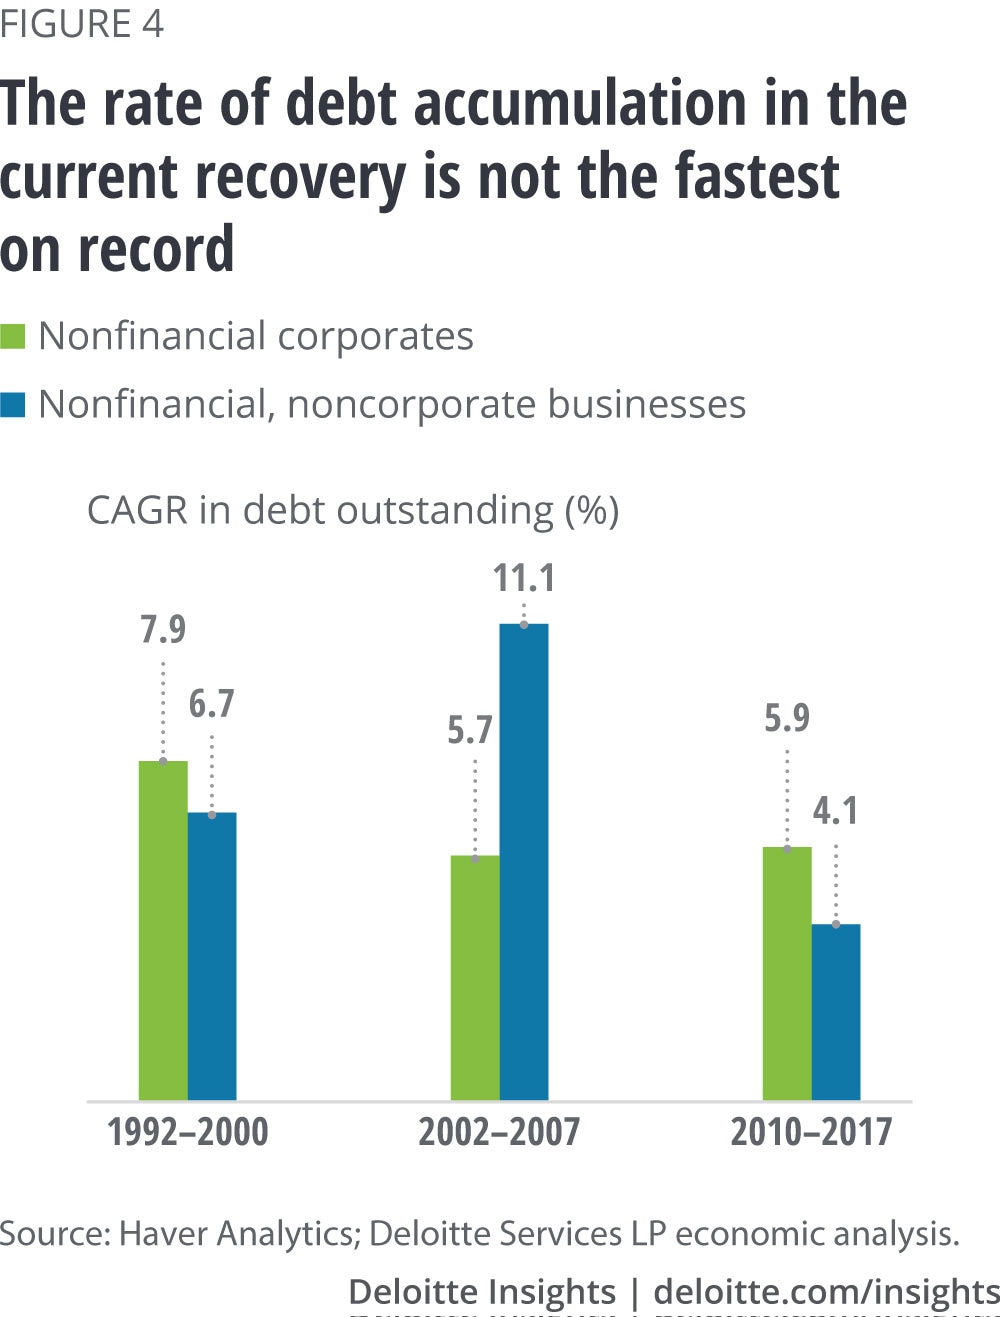 The rate of debt accumulation in the current recovery is not the fastest on record